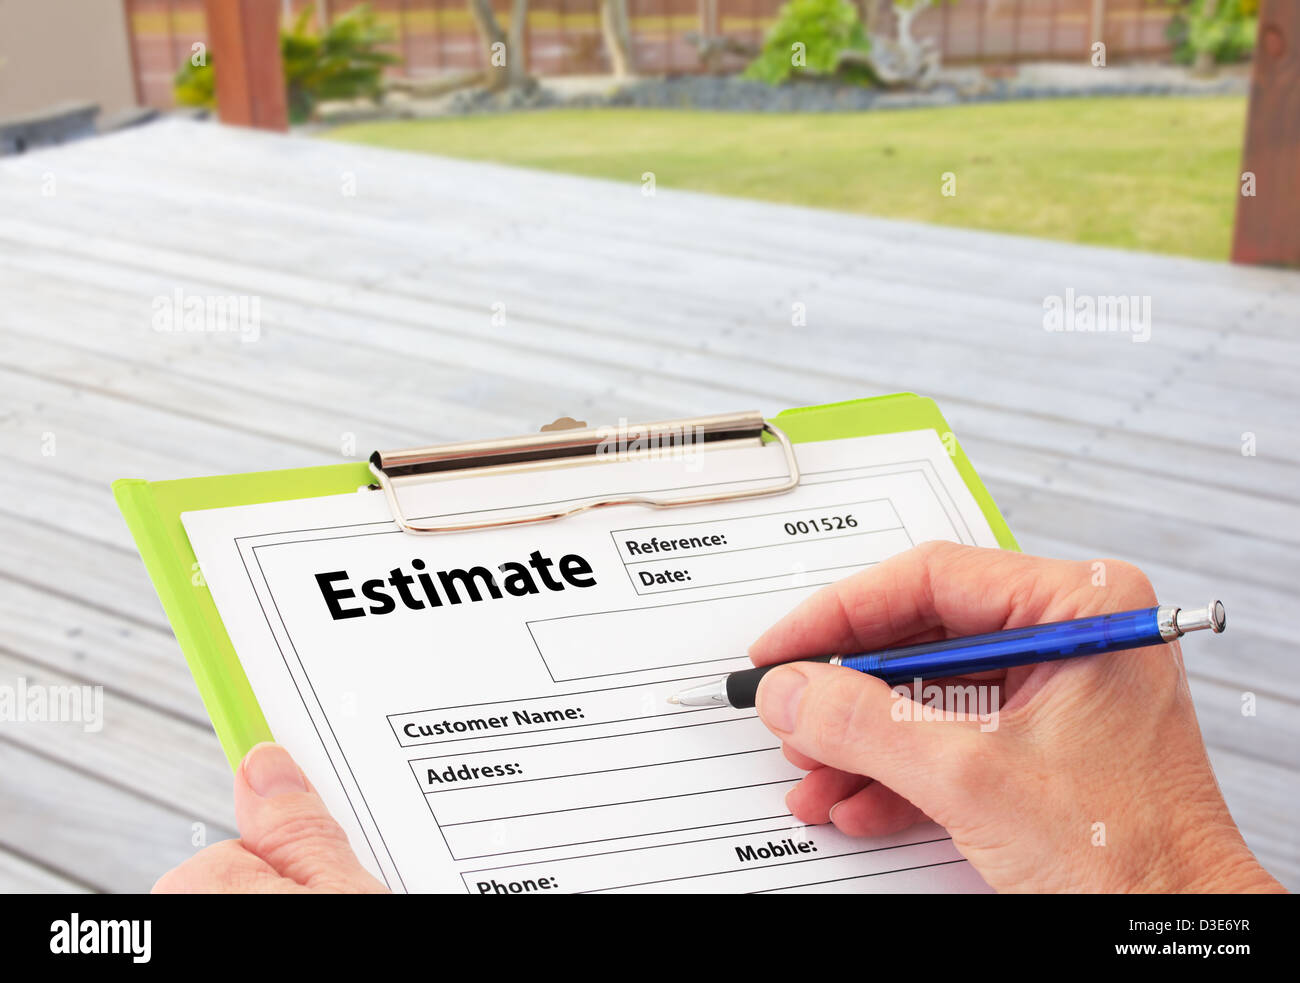 Hand Writing an Estimate for Deck Renovation - Stock Image